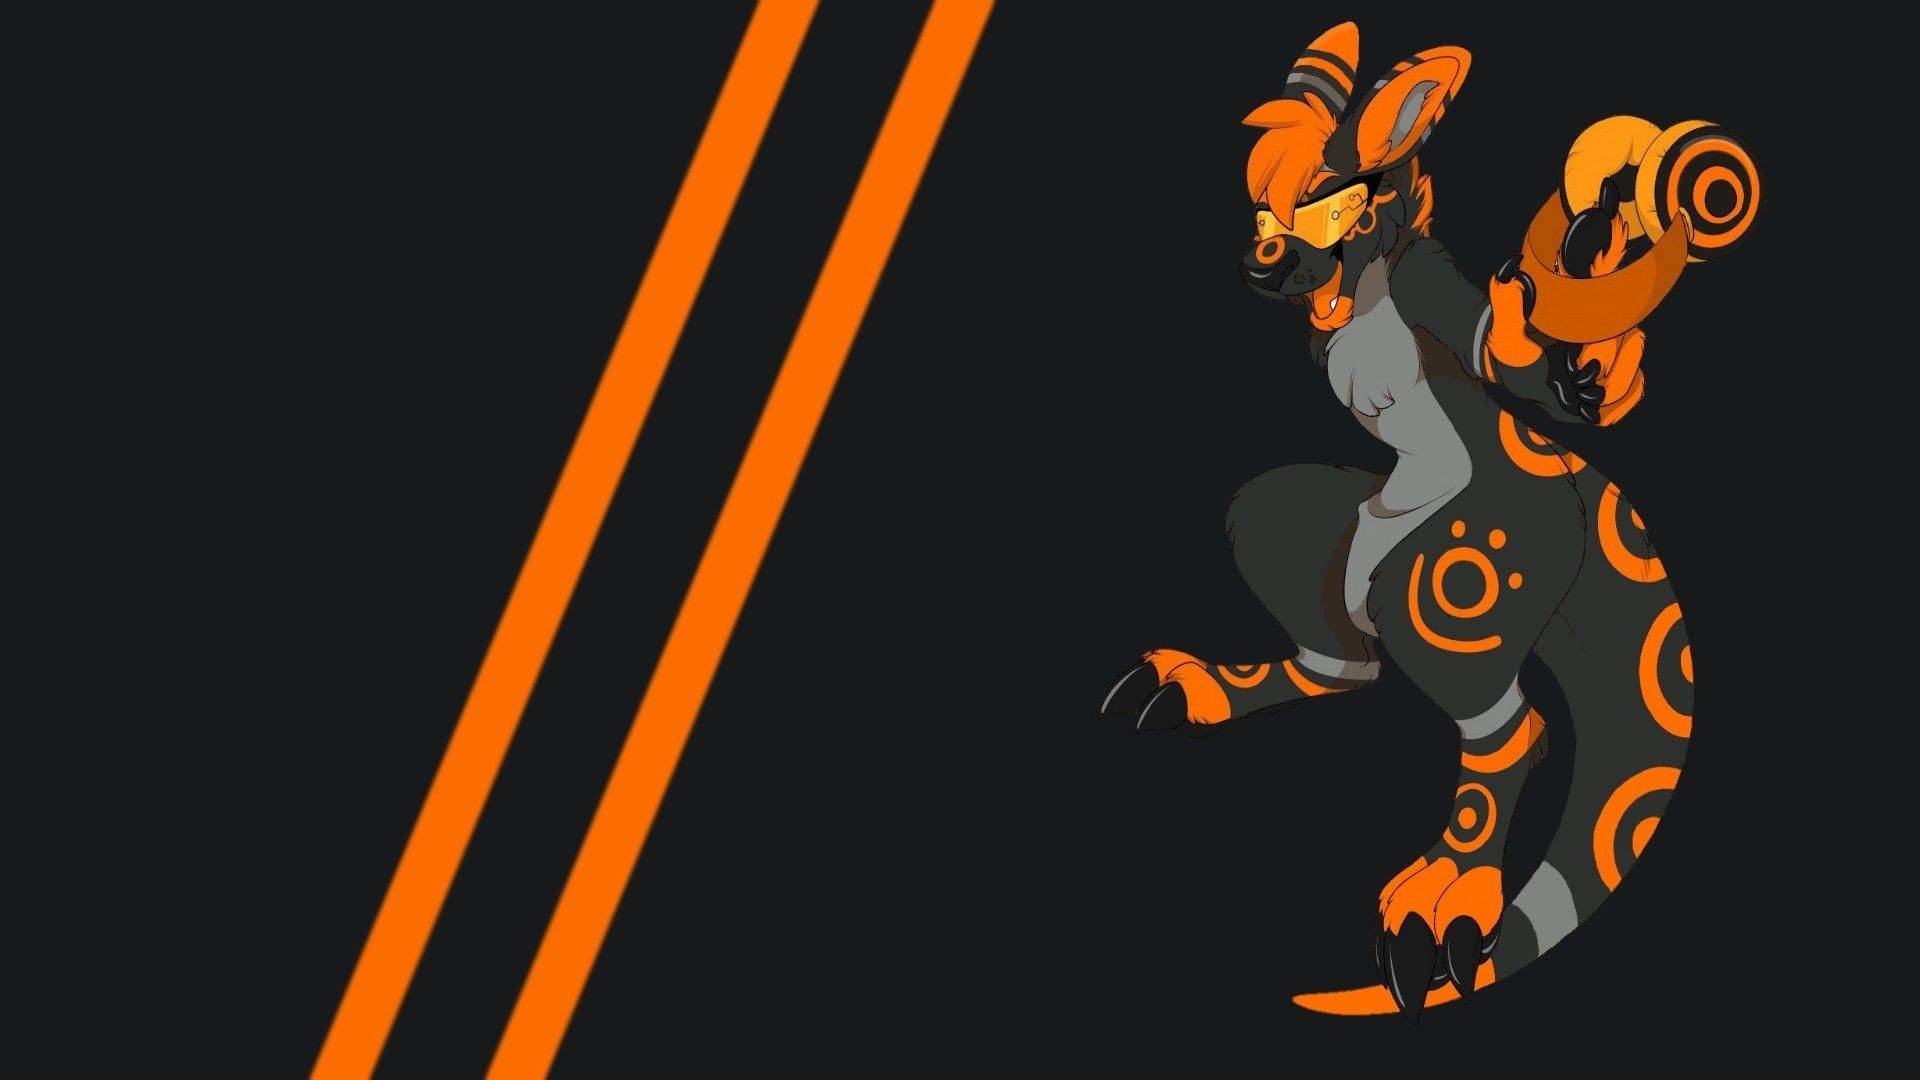 1920x1080 Anthro, Furry Wallpaper HD Character design in